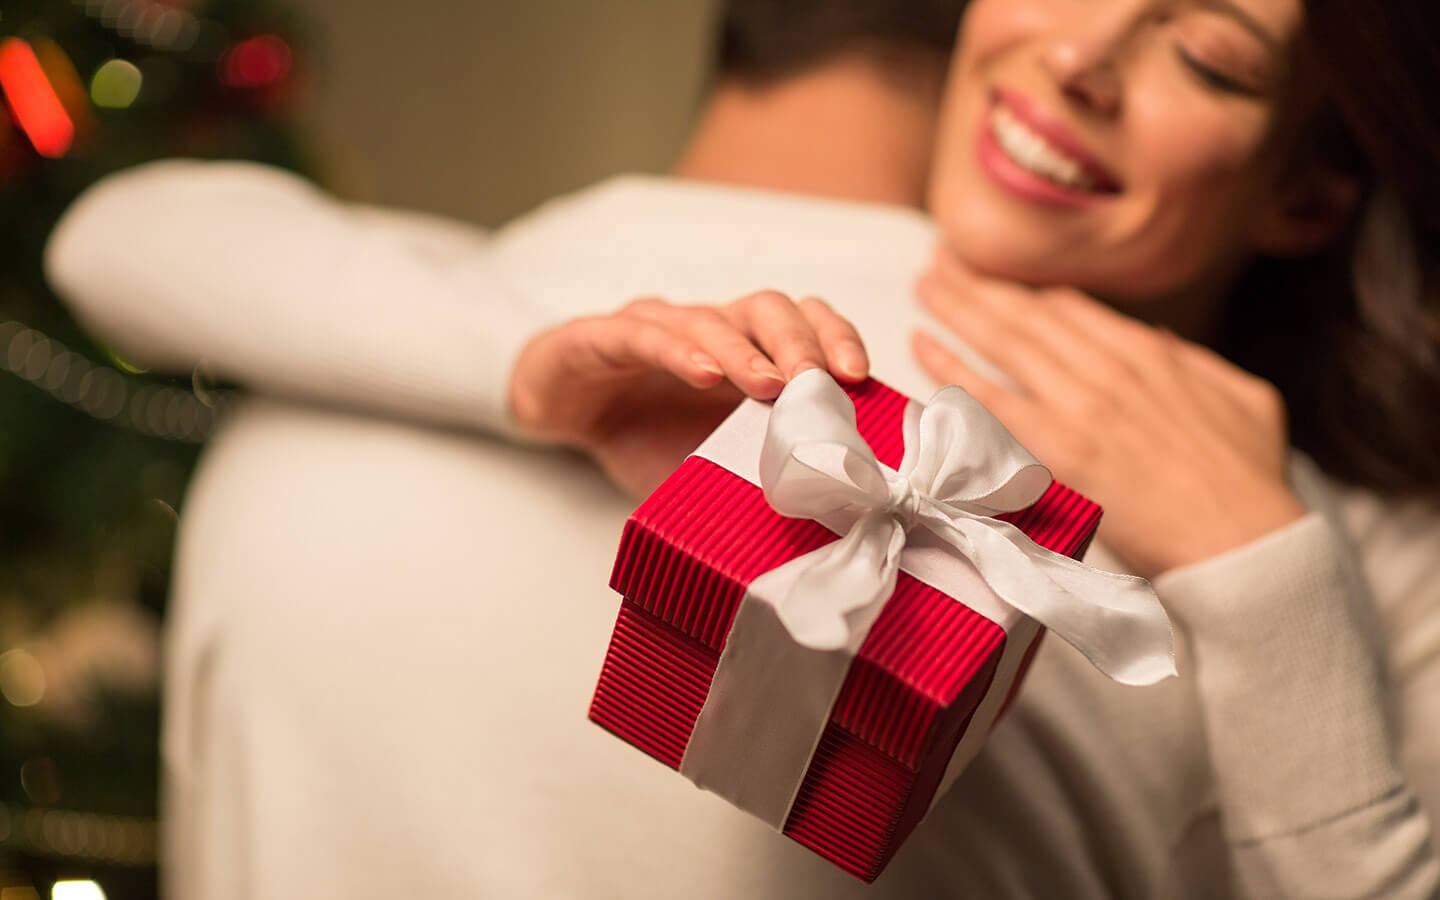 Romantic couple hugging and holding a gift